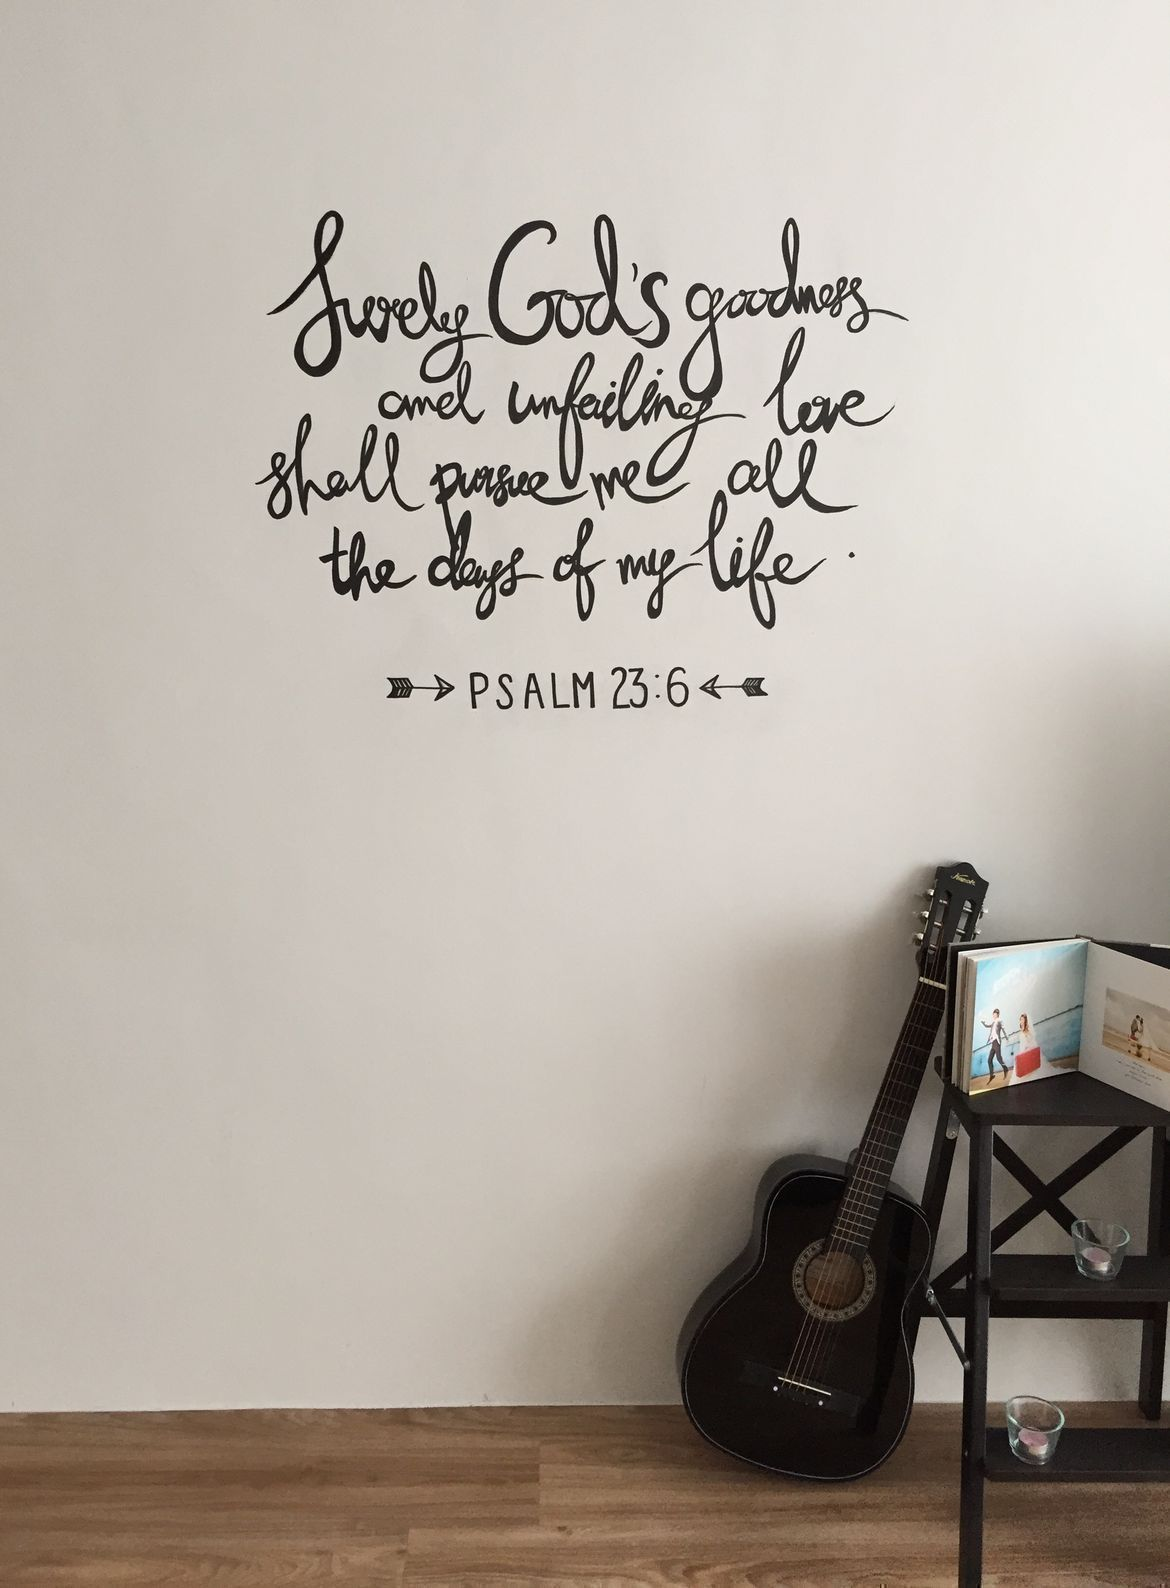 cool wall sticker provides personality to the apartment